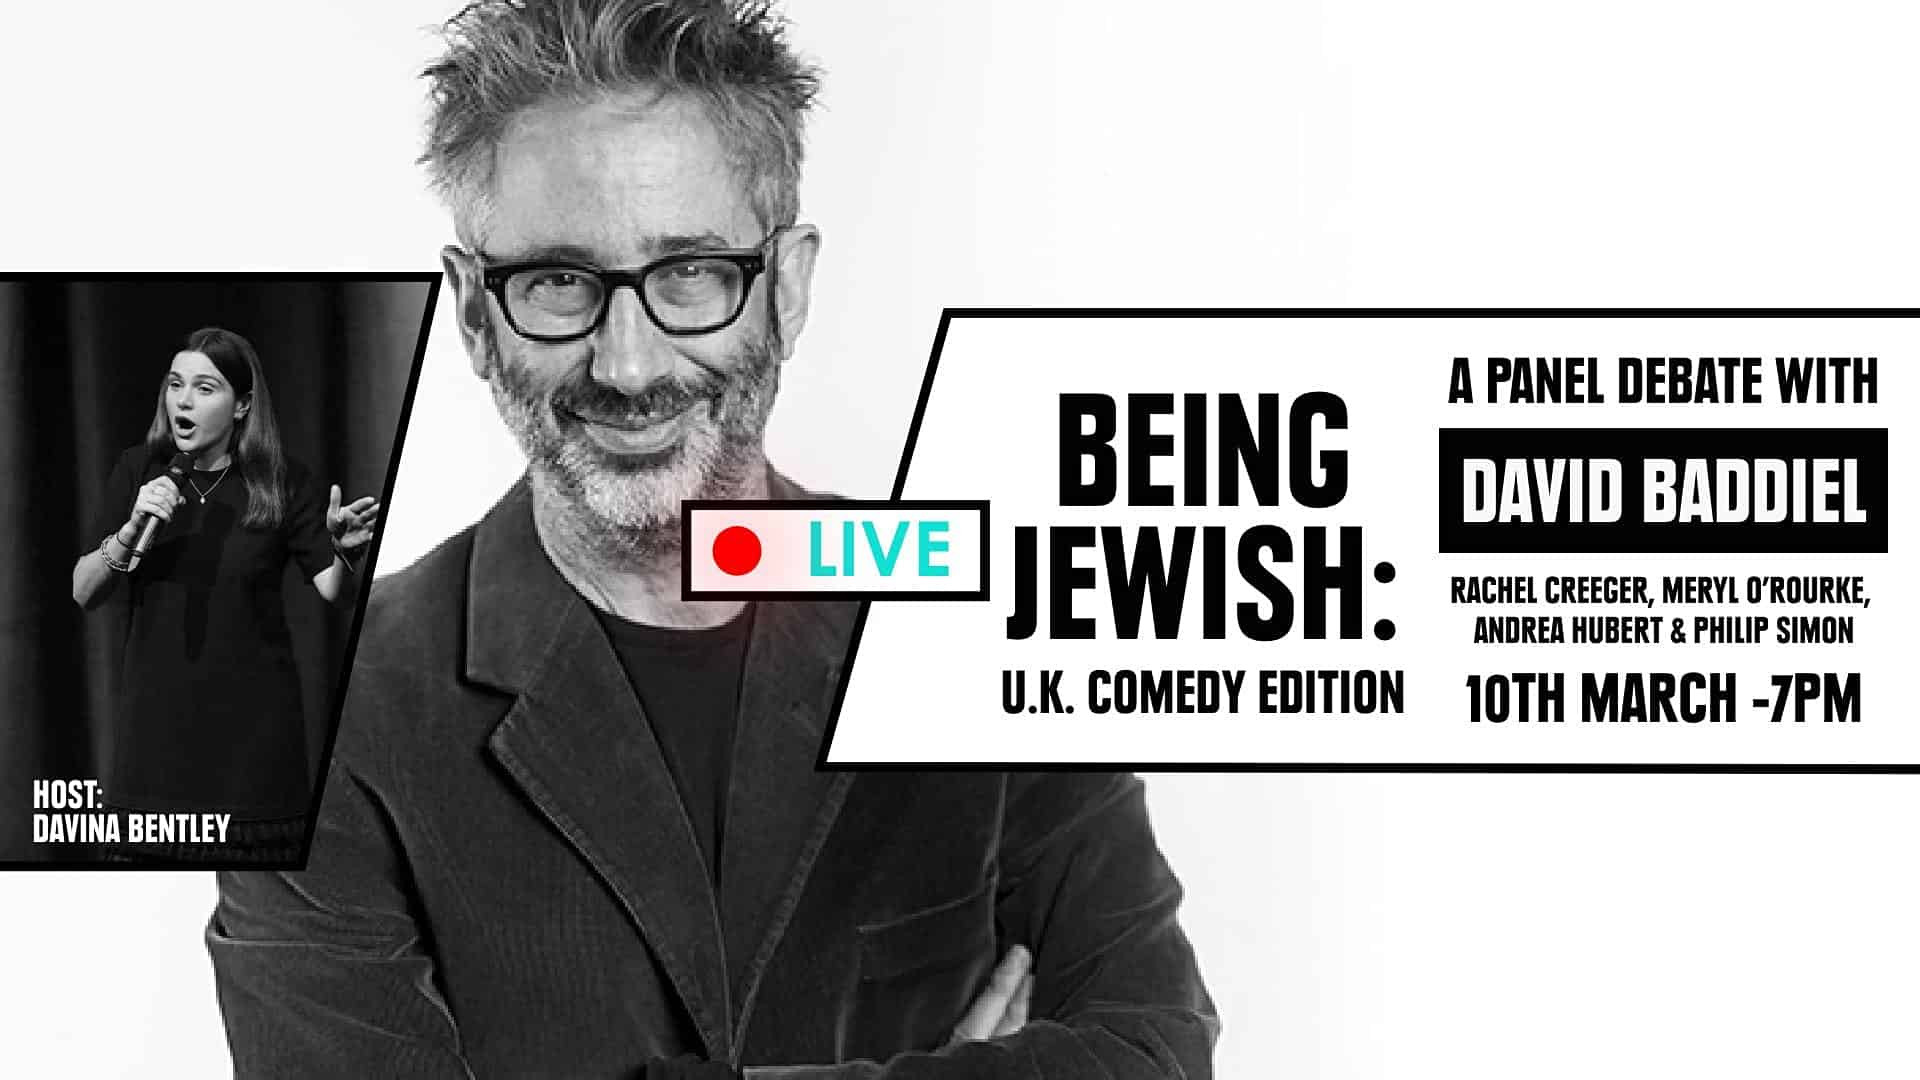 Being Jewish: UK Comedy Edition